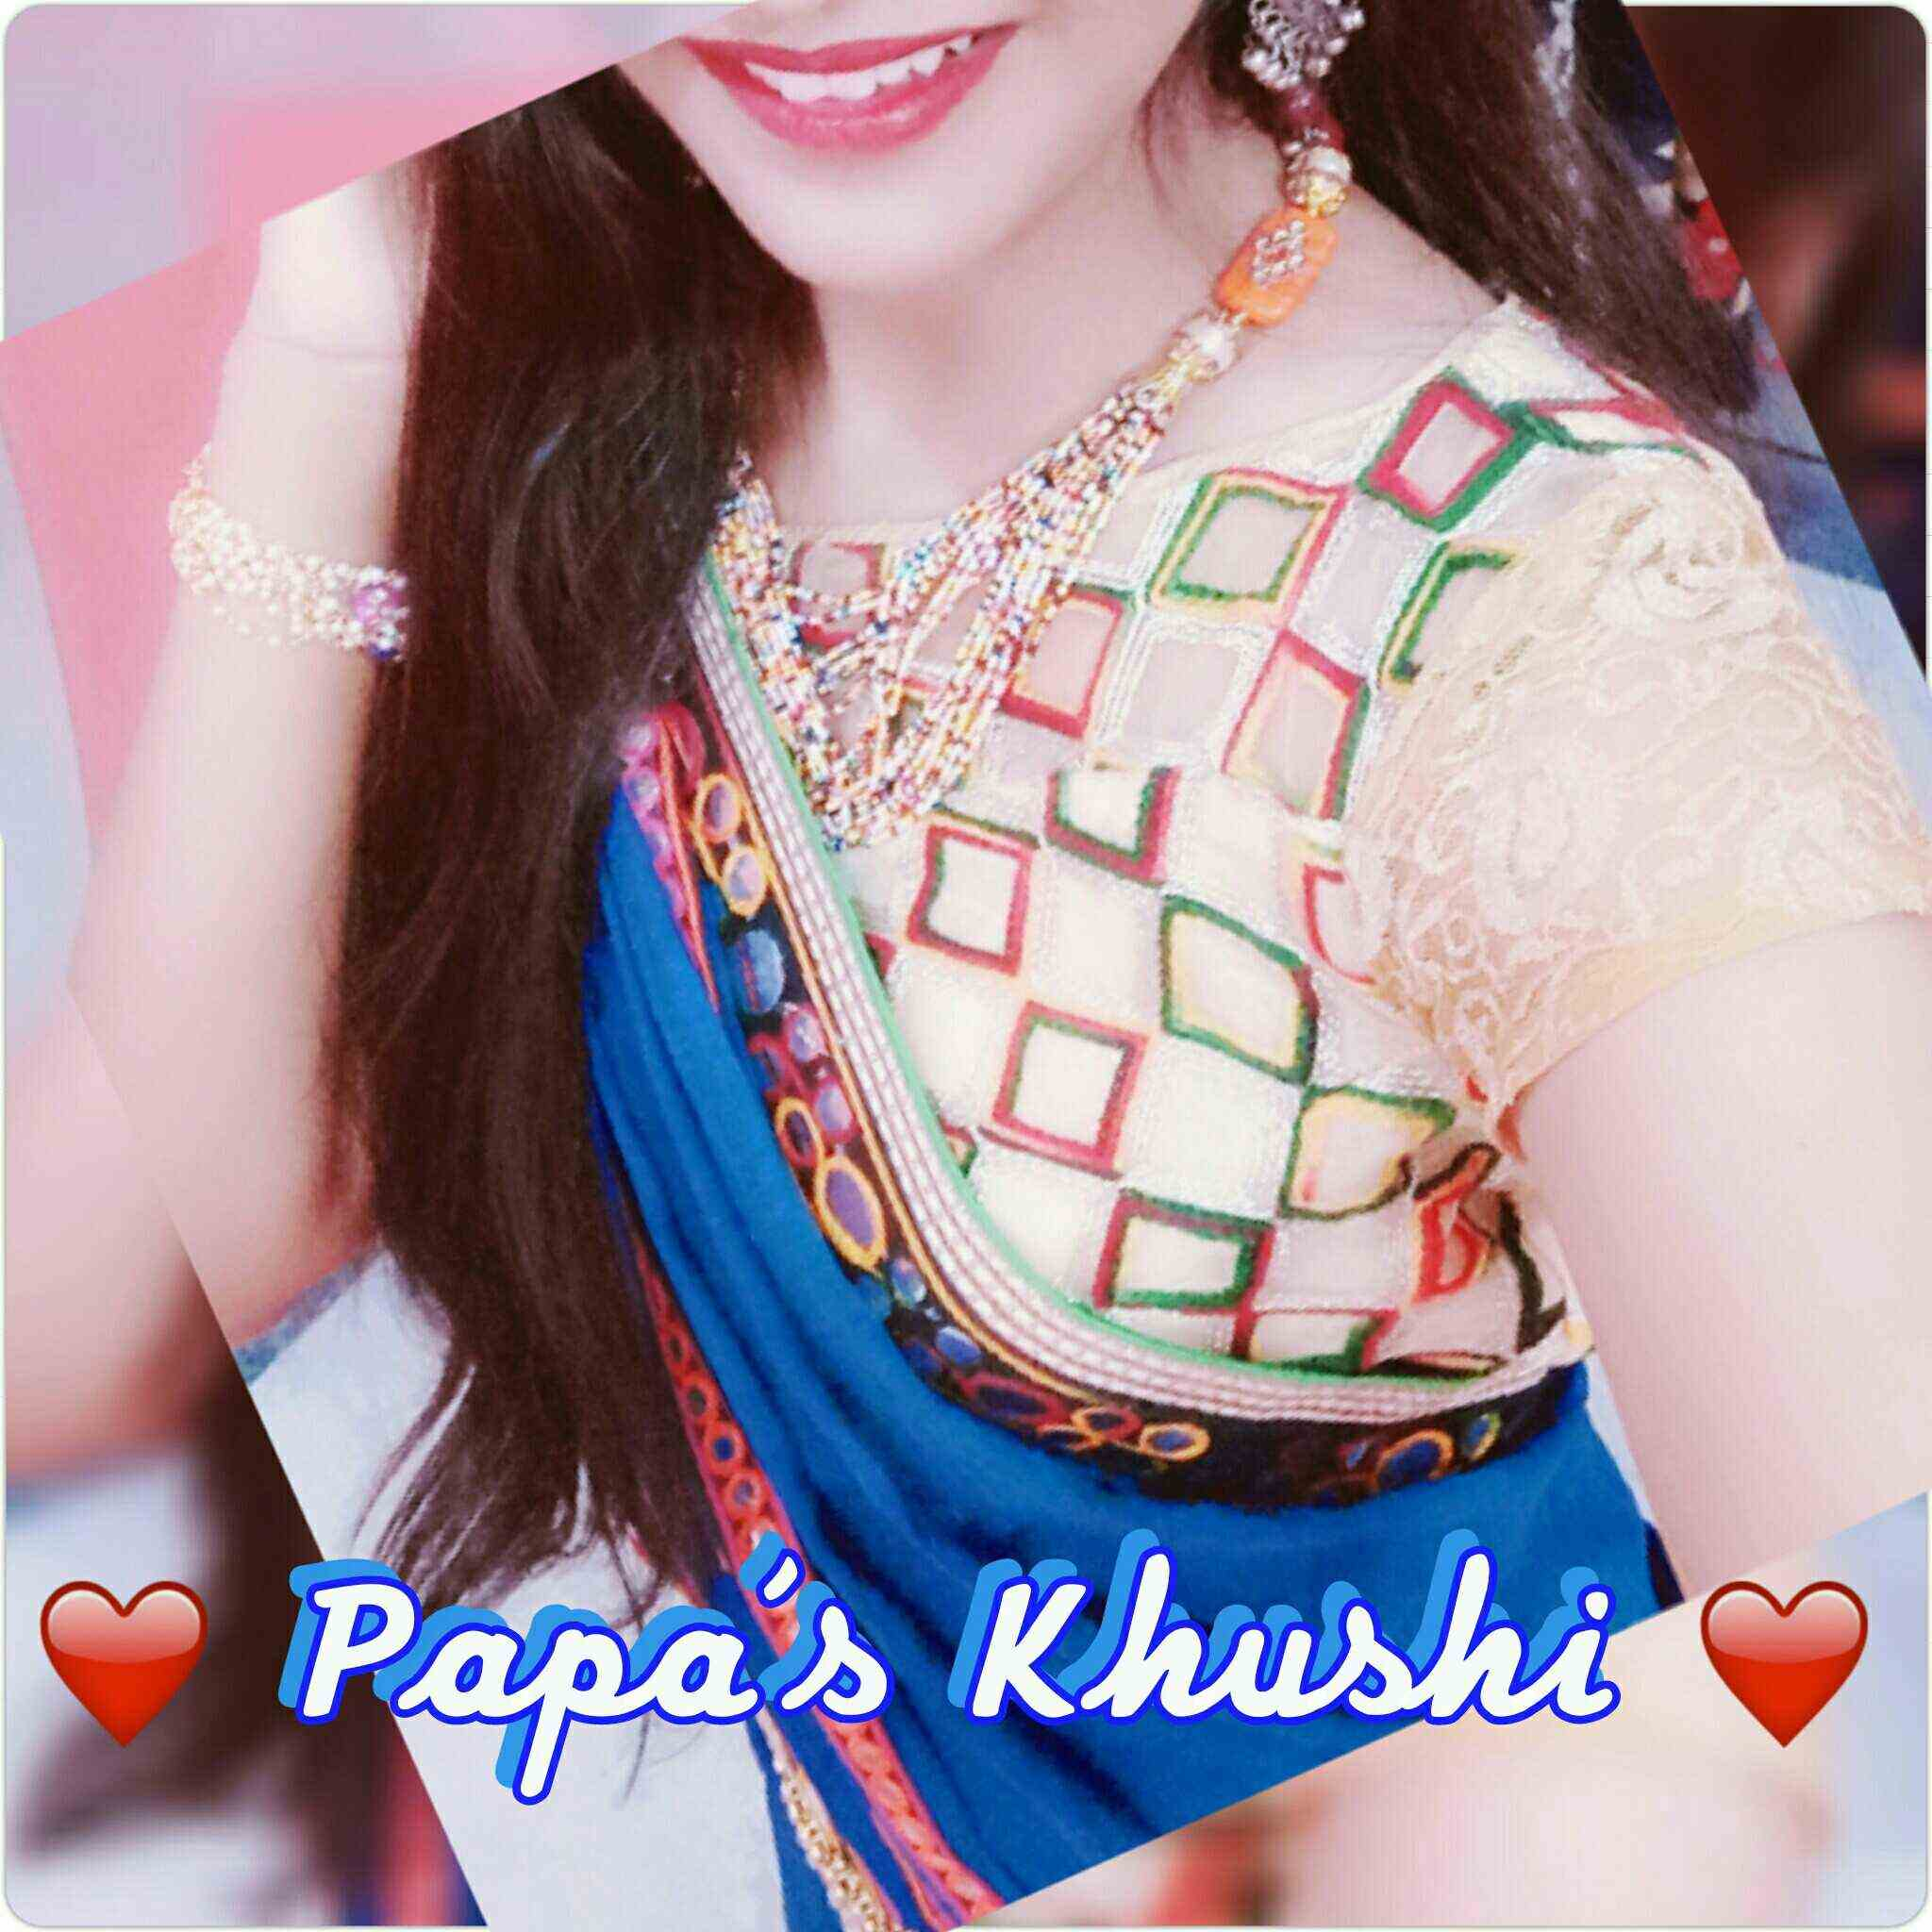 Miss Khushi Lakhesar  Papa ki Khushi hain...love photography nd write also chek out my 2nd id for quotes(link👇)